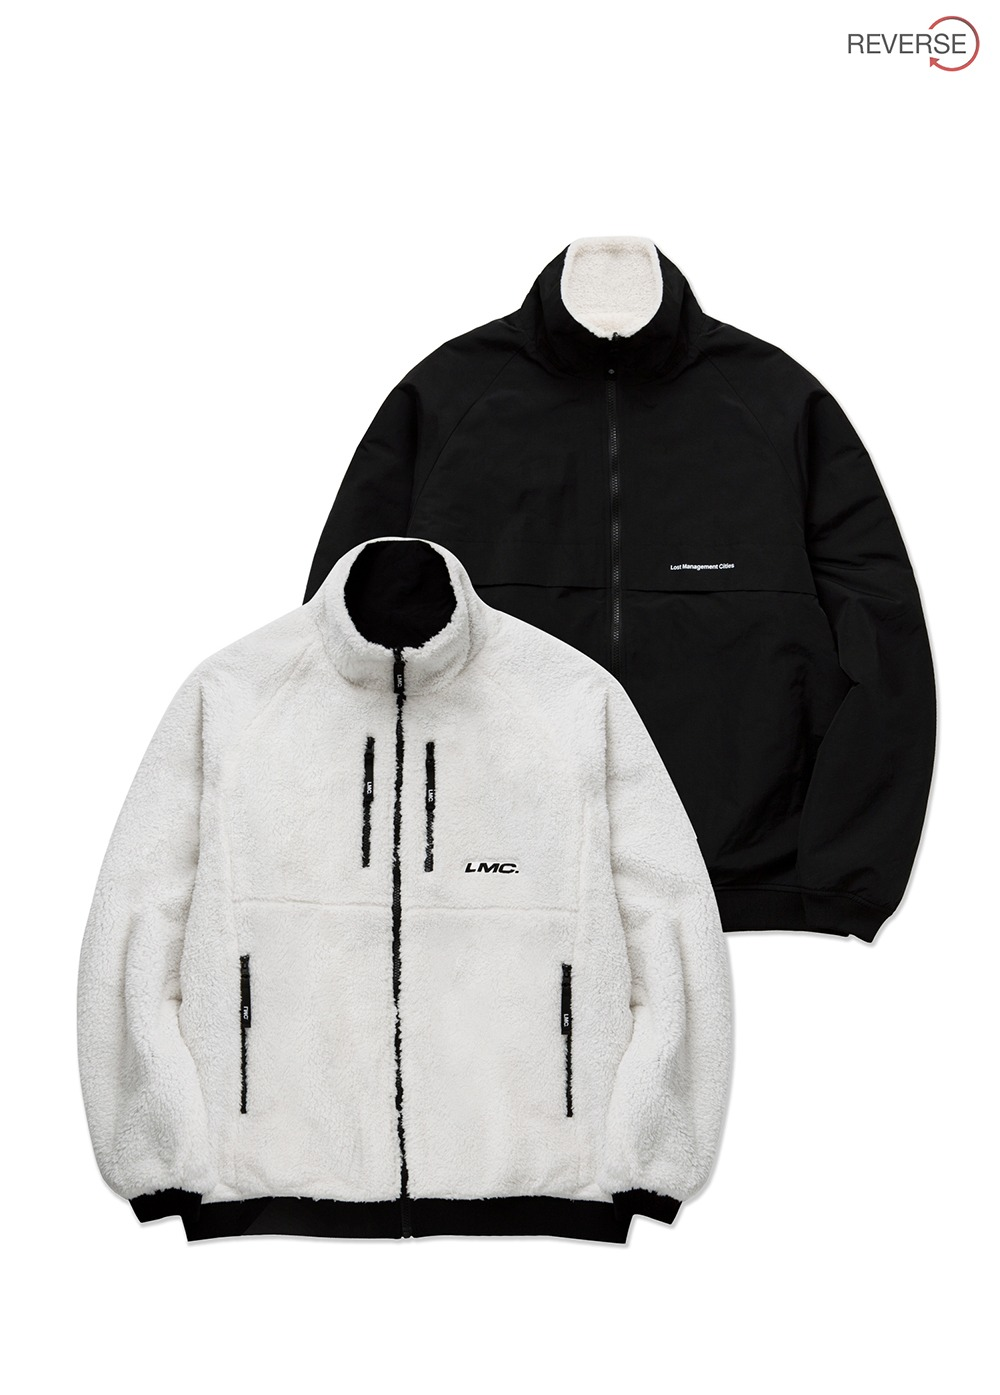 LMC FLEECE REVERSIBLE MP JACKET cream/black